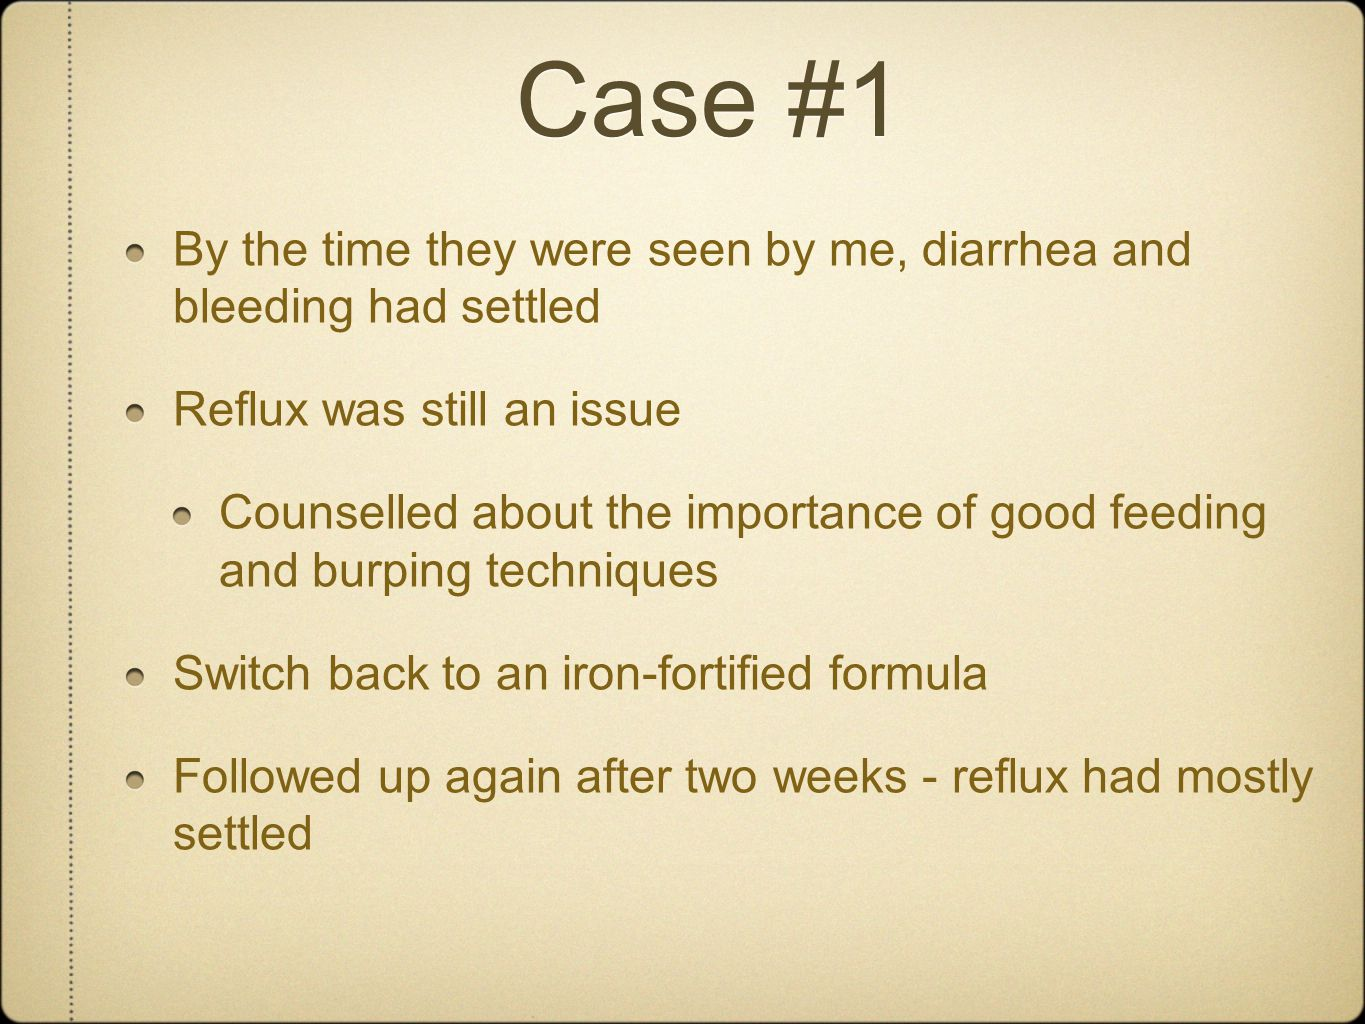 Case #1 By the time they were seen by me, diarrhea and bleeding had settled. Reflux was still an issue.